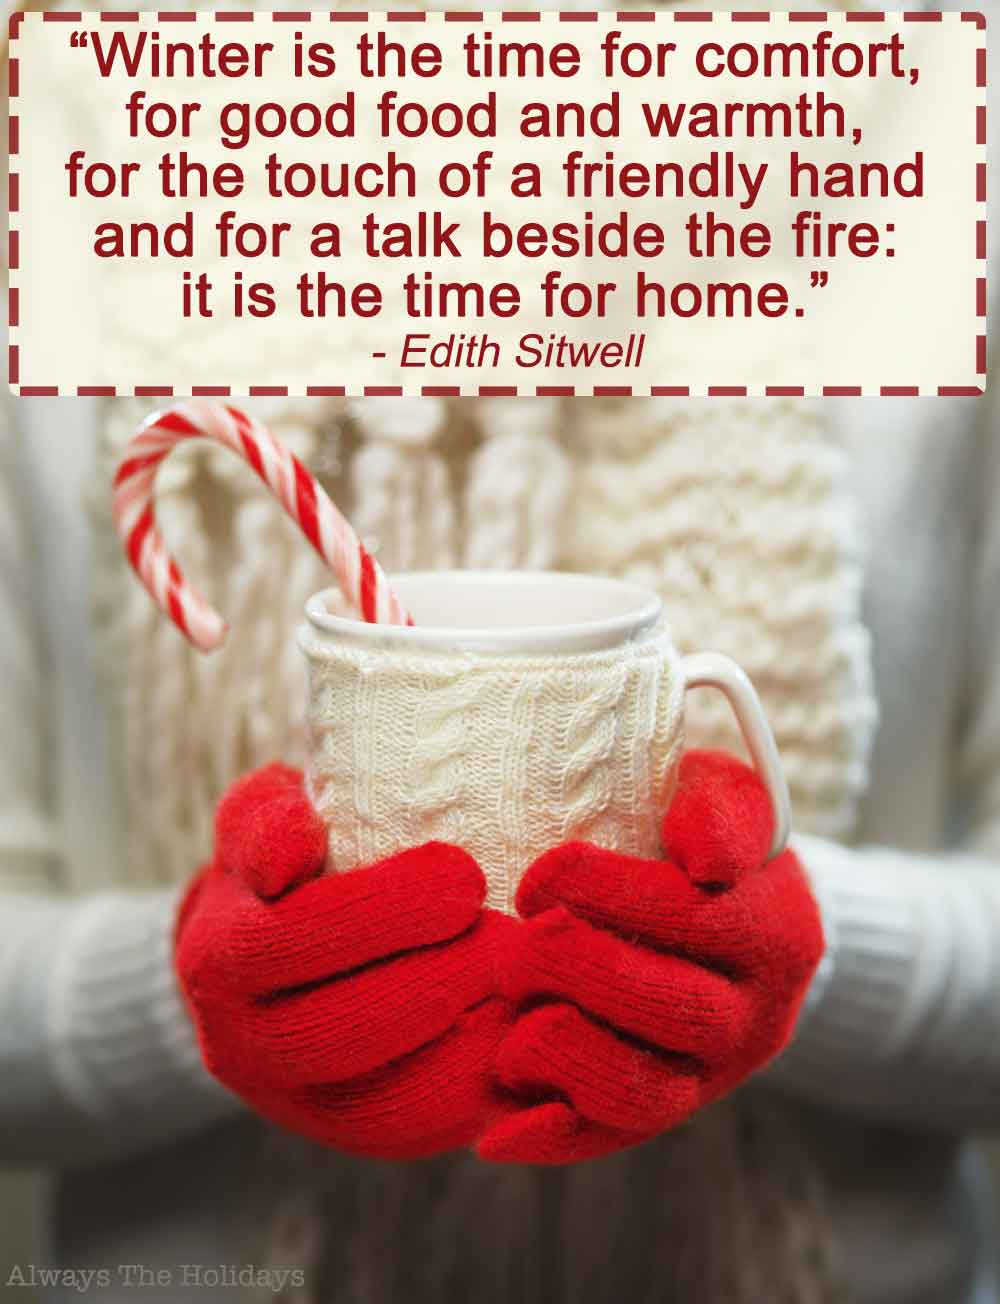 Two hands in red gloves holding a white mug with a peppermint stick and a text overlay with Christmas family quotes on it.